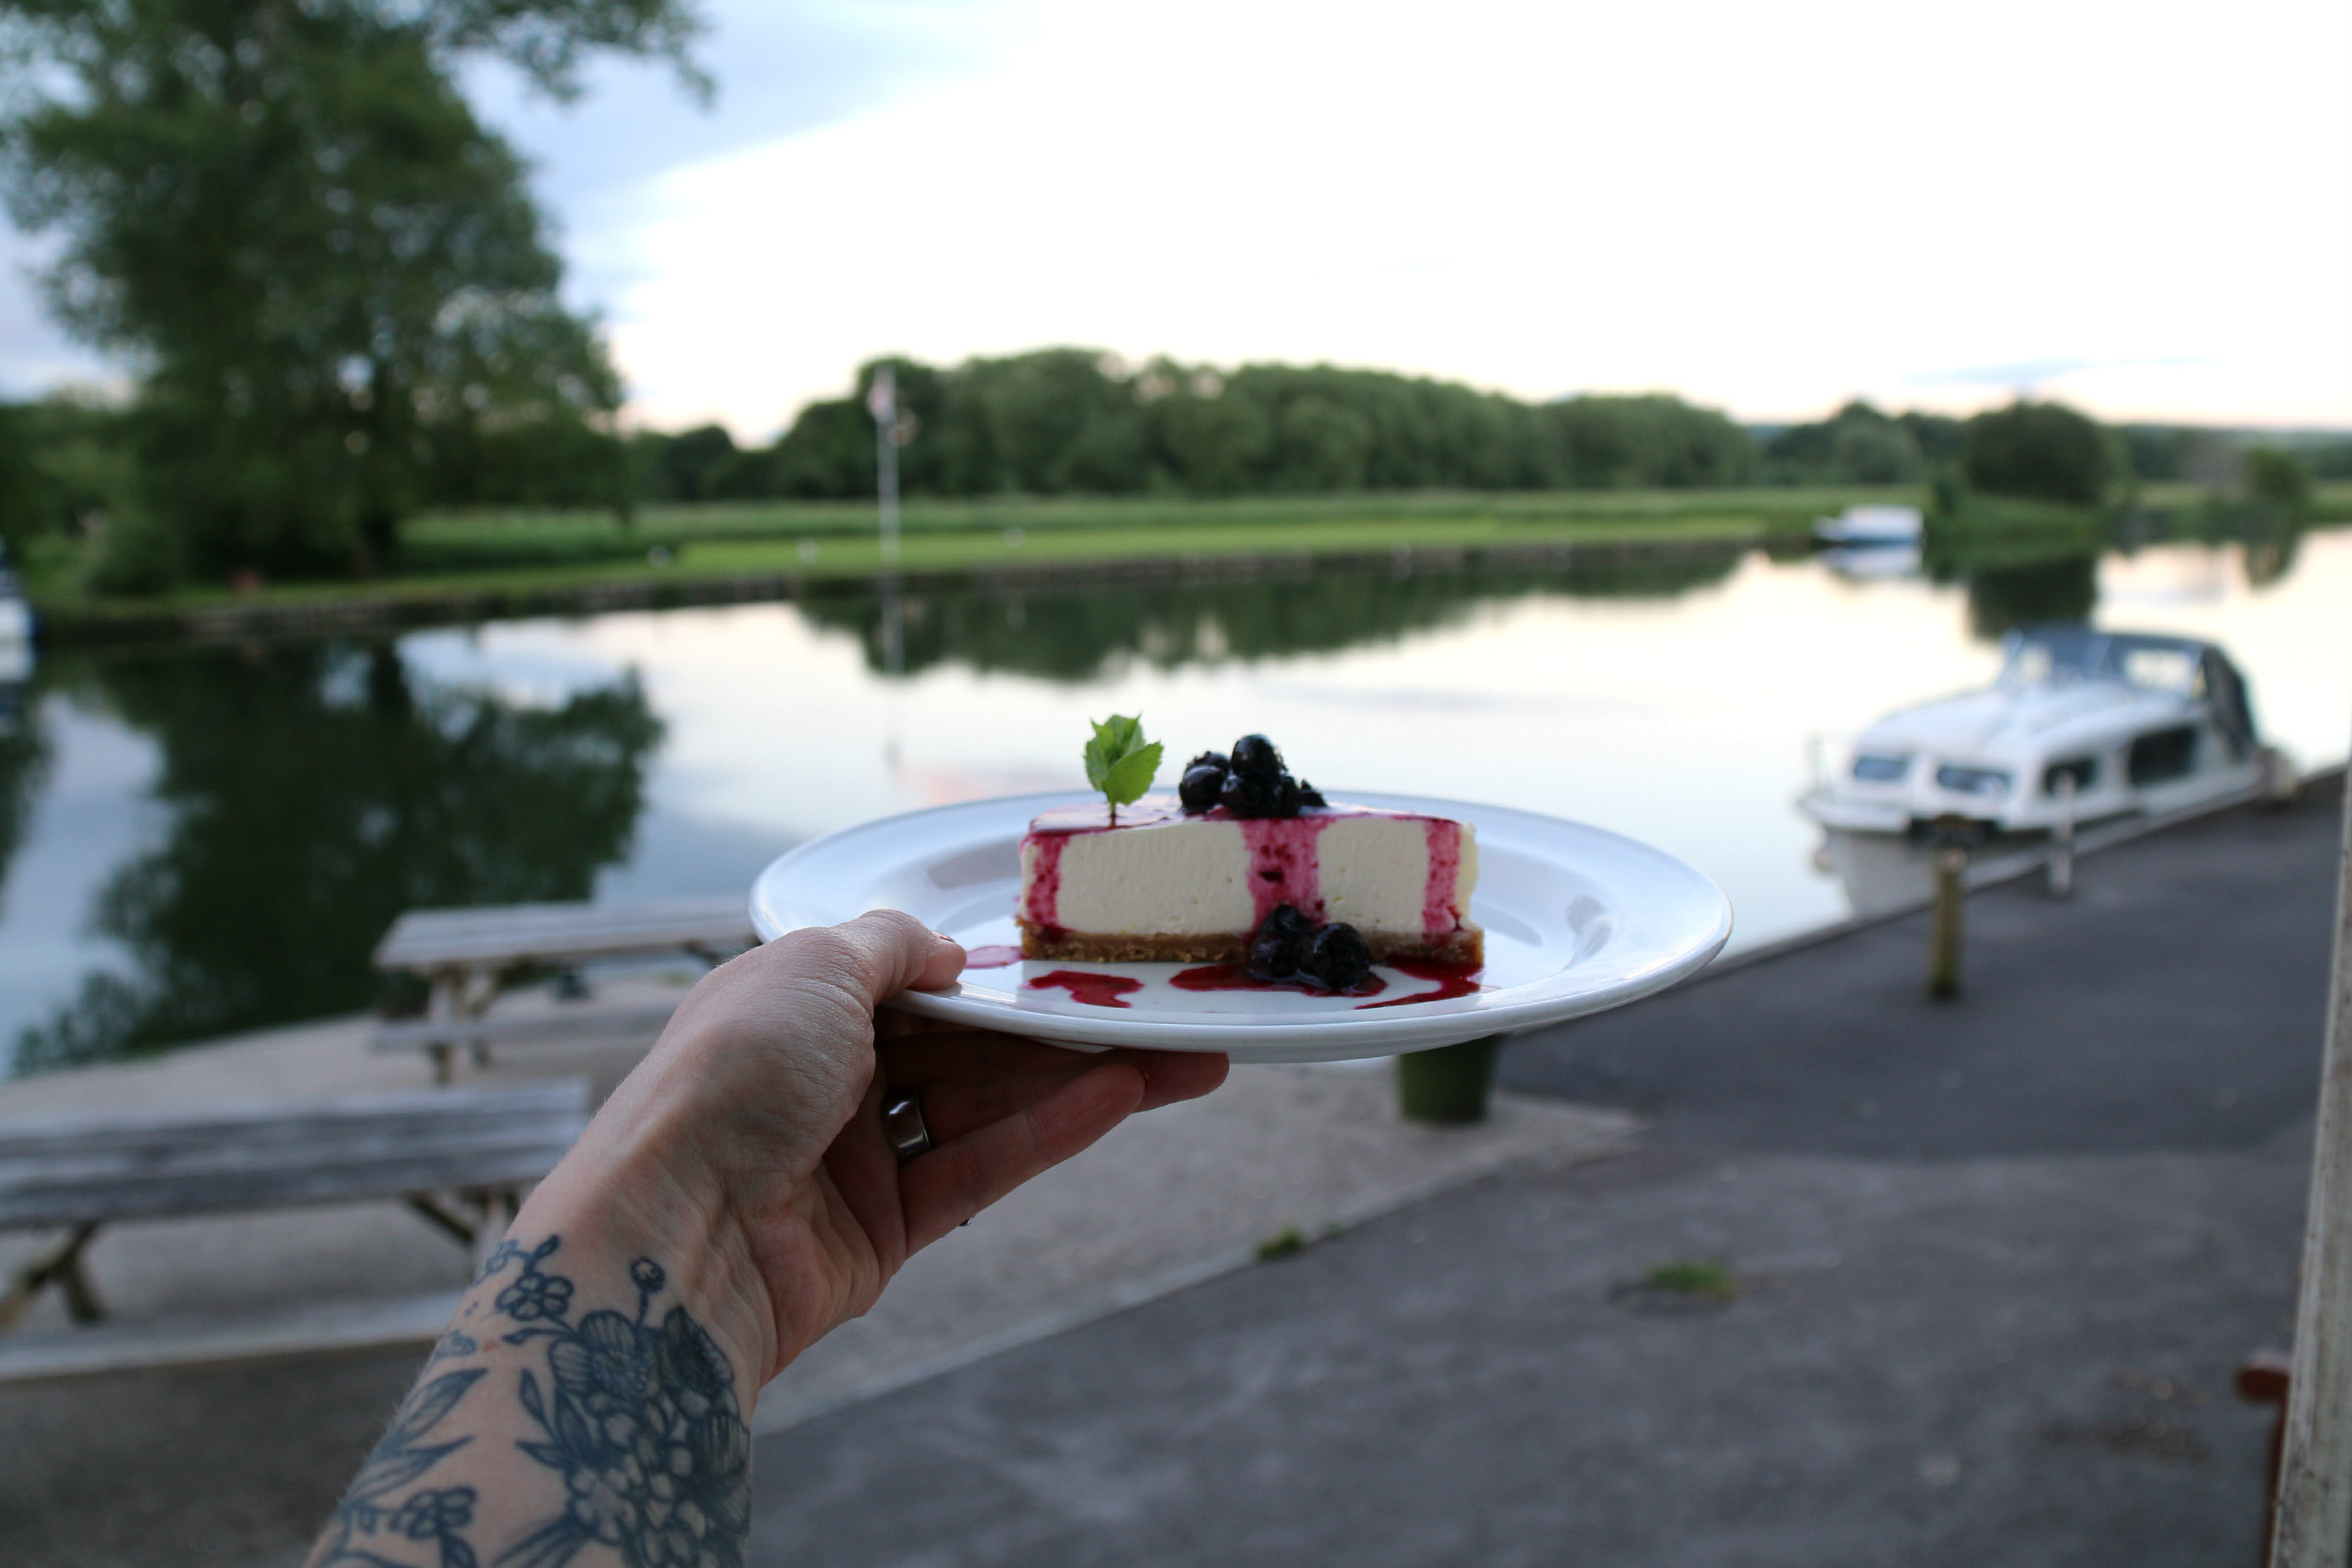 Walking along the Thames dinner at the Beetle and Wedge Boathouse cheesecake